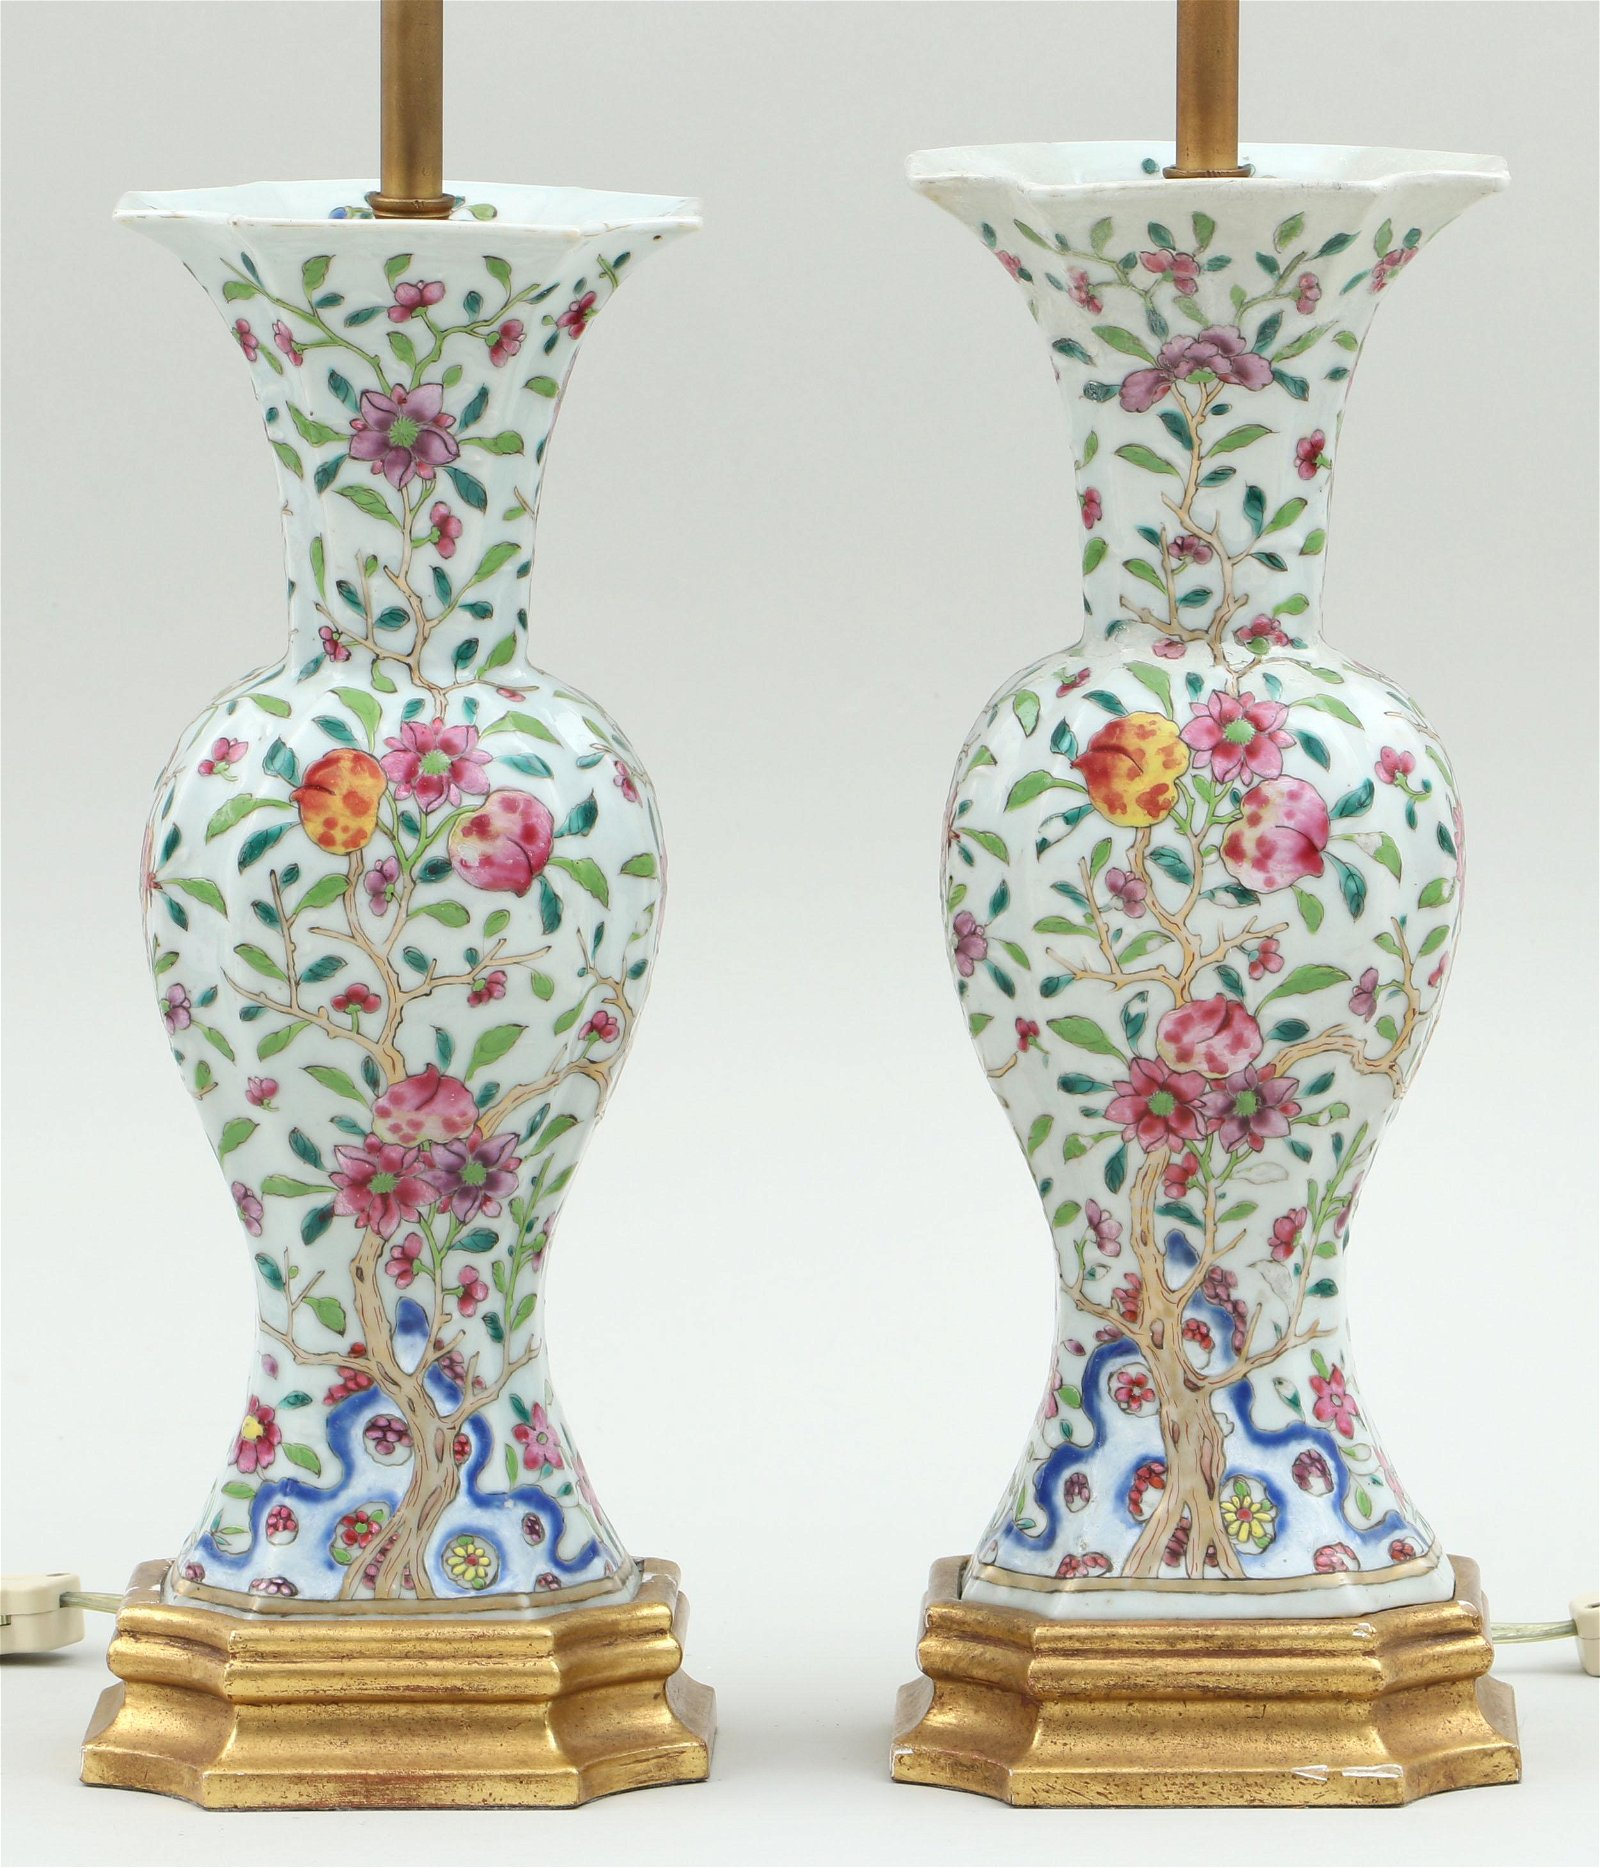 Pair of 18th/19th century Chinese export vases